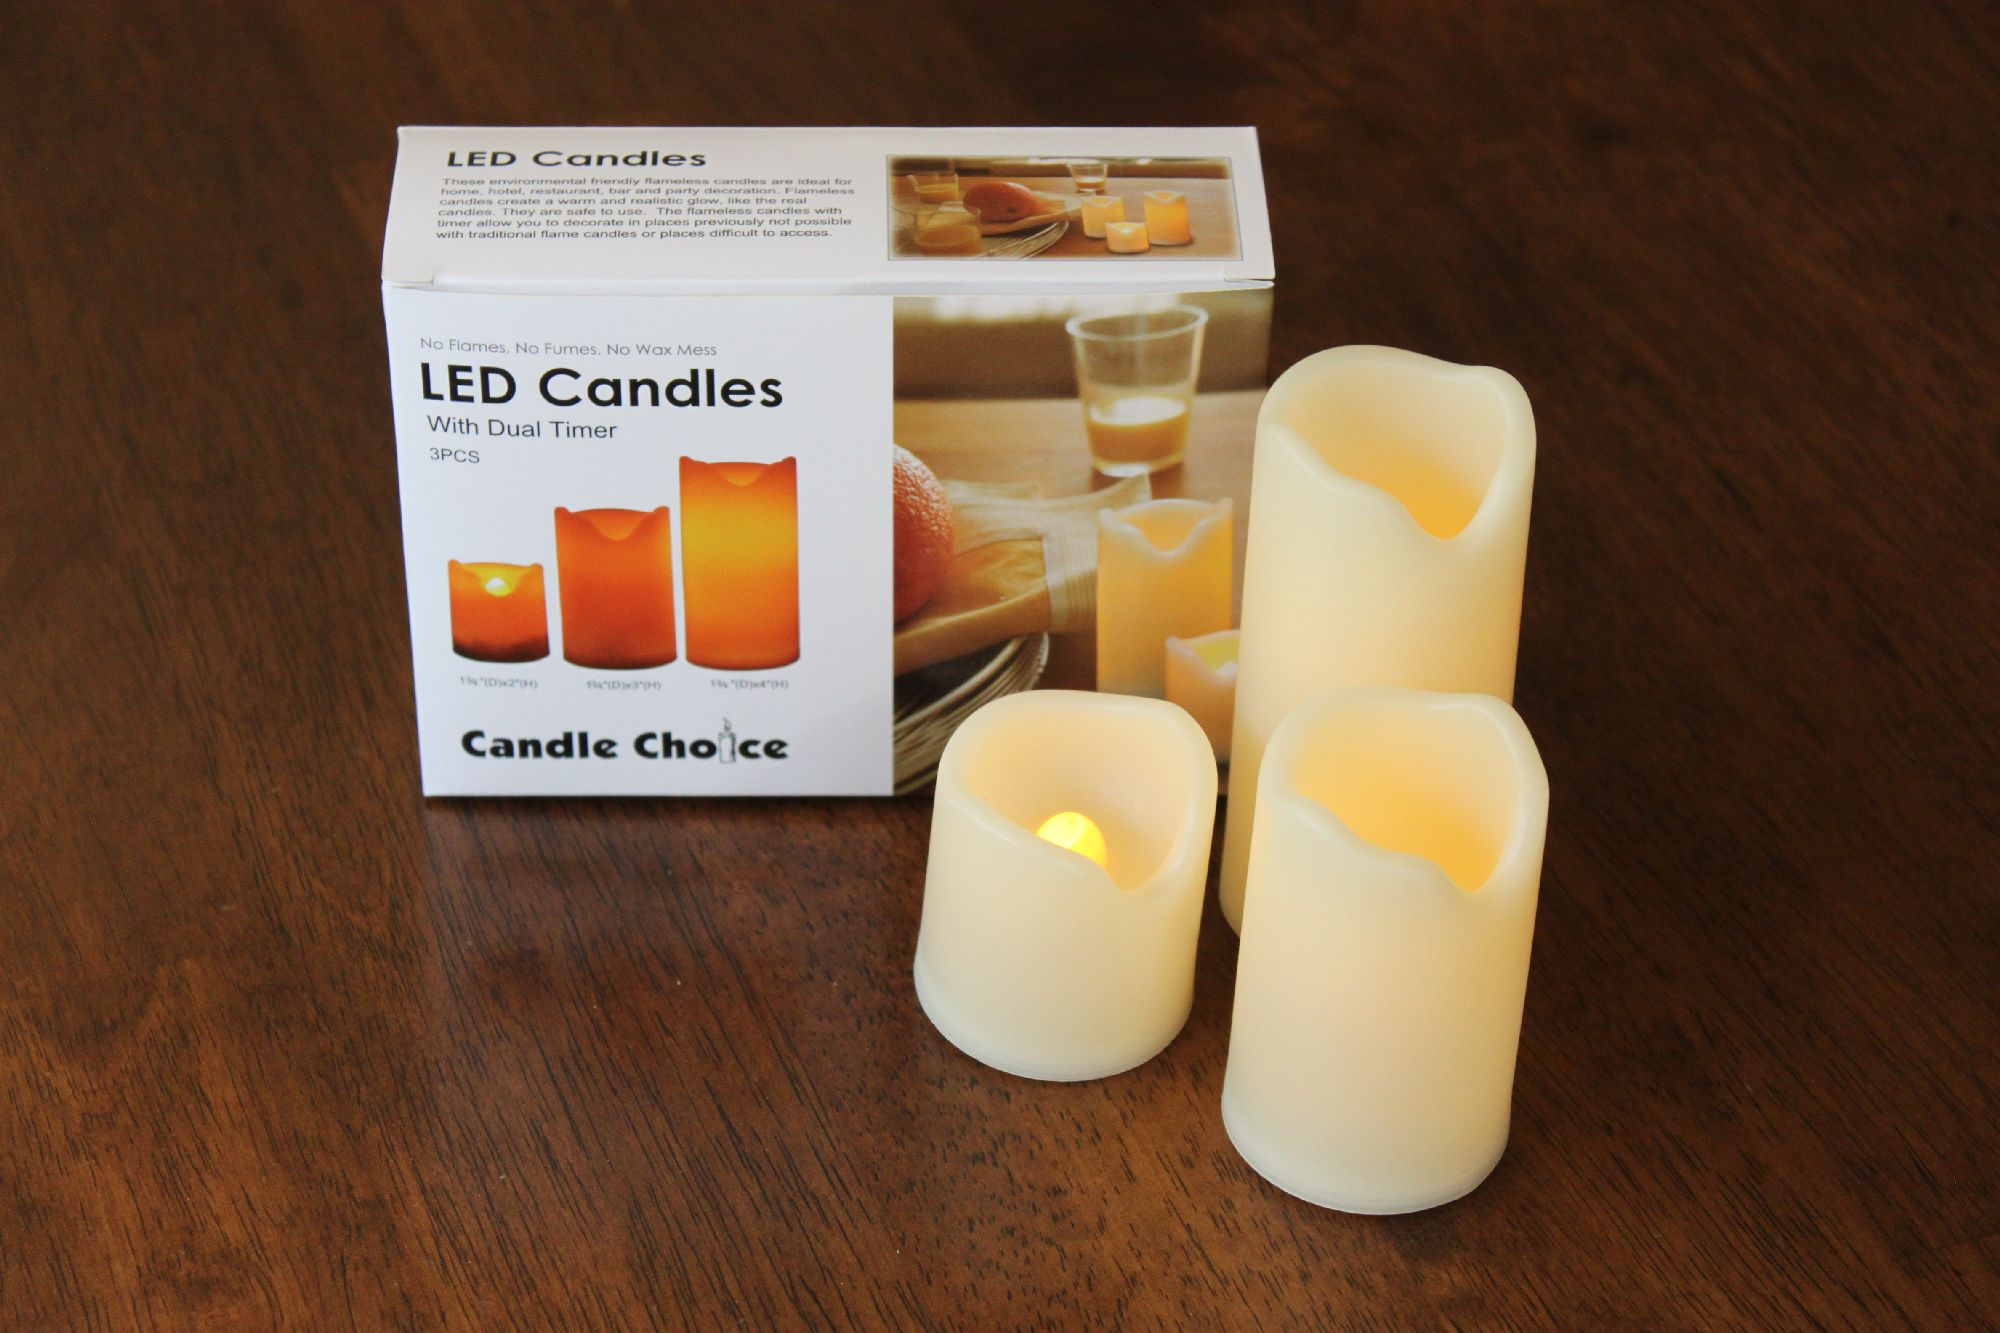 Set of 3 Flameless LED Mini Pillar Candles with Dual Timers